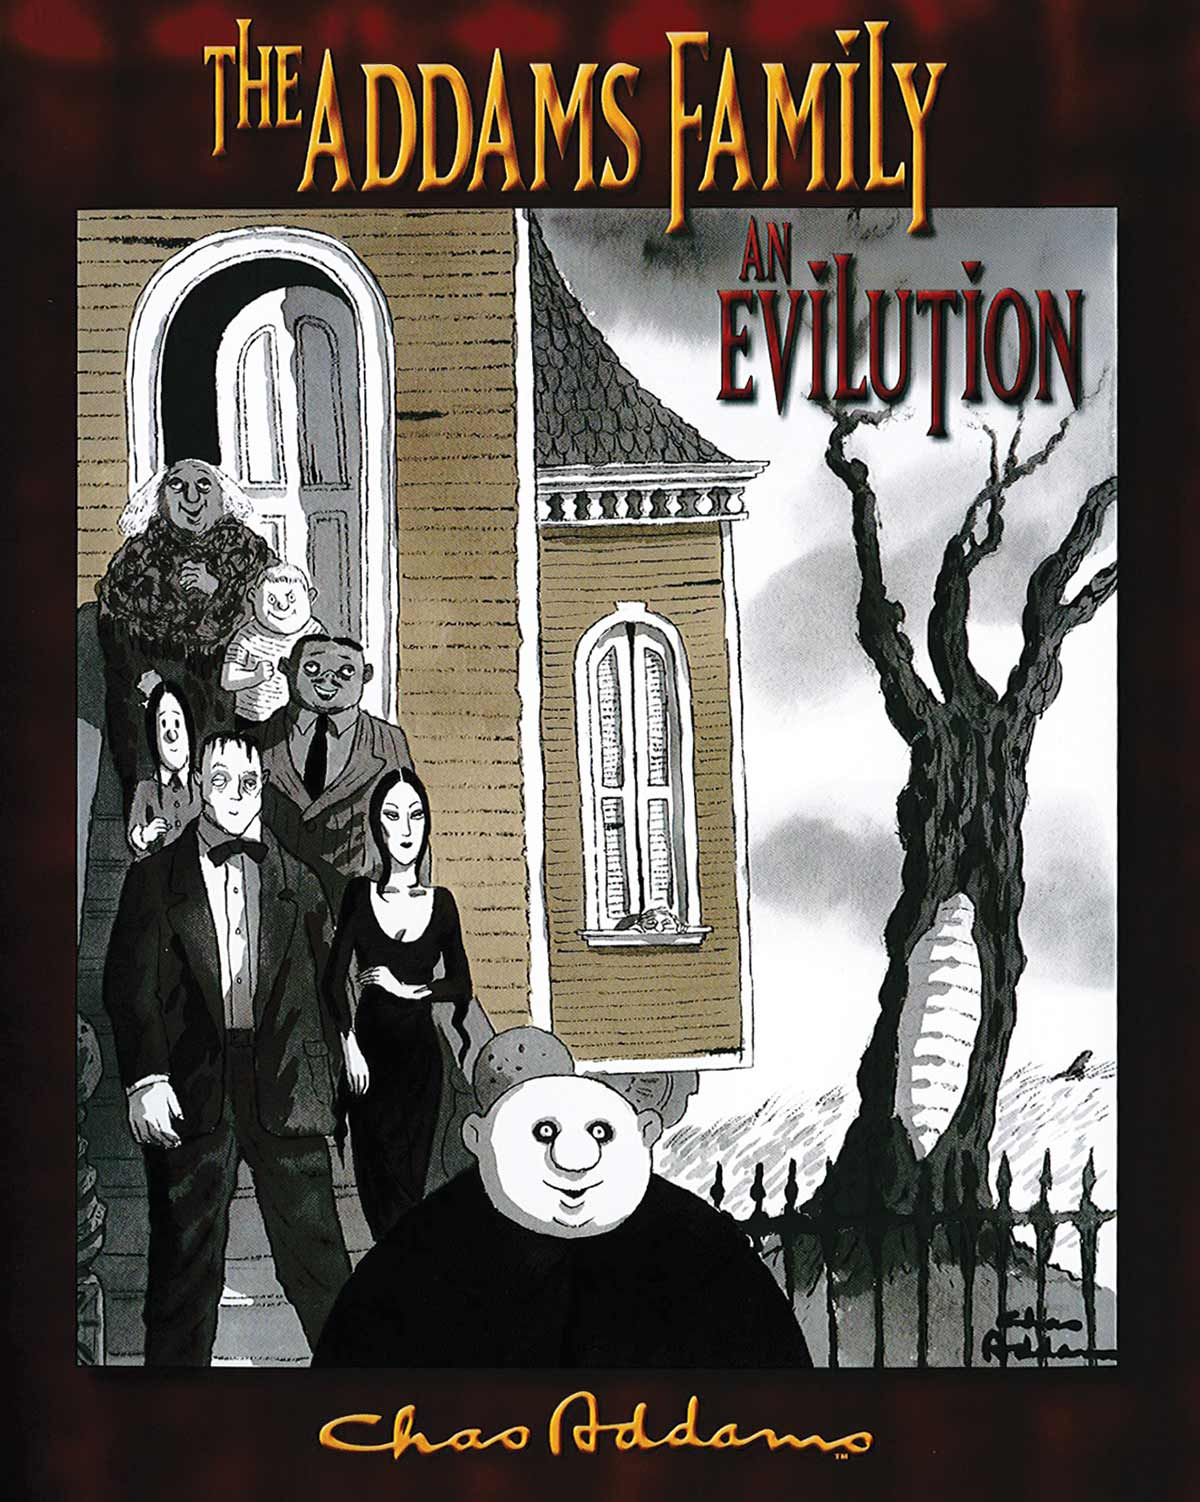 The Addams Family: An Evilution book cover.